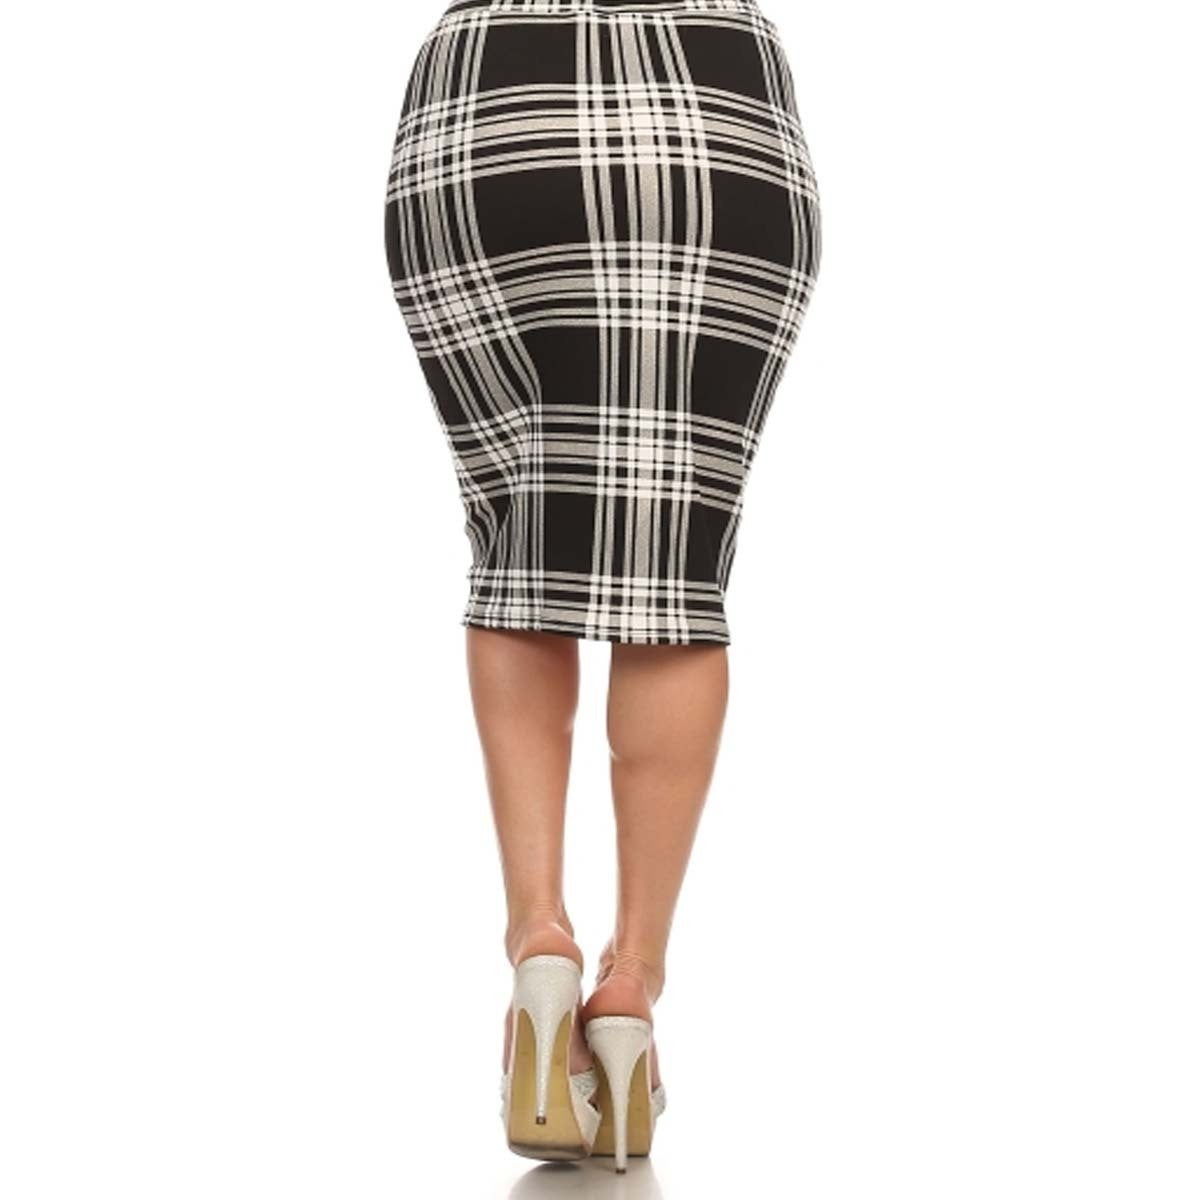 35d3ff6e98a Shop MOA Collection Women s Plus Size High Waisted Plaid Print Skirt ...